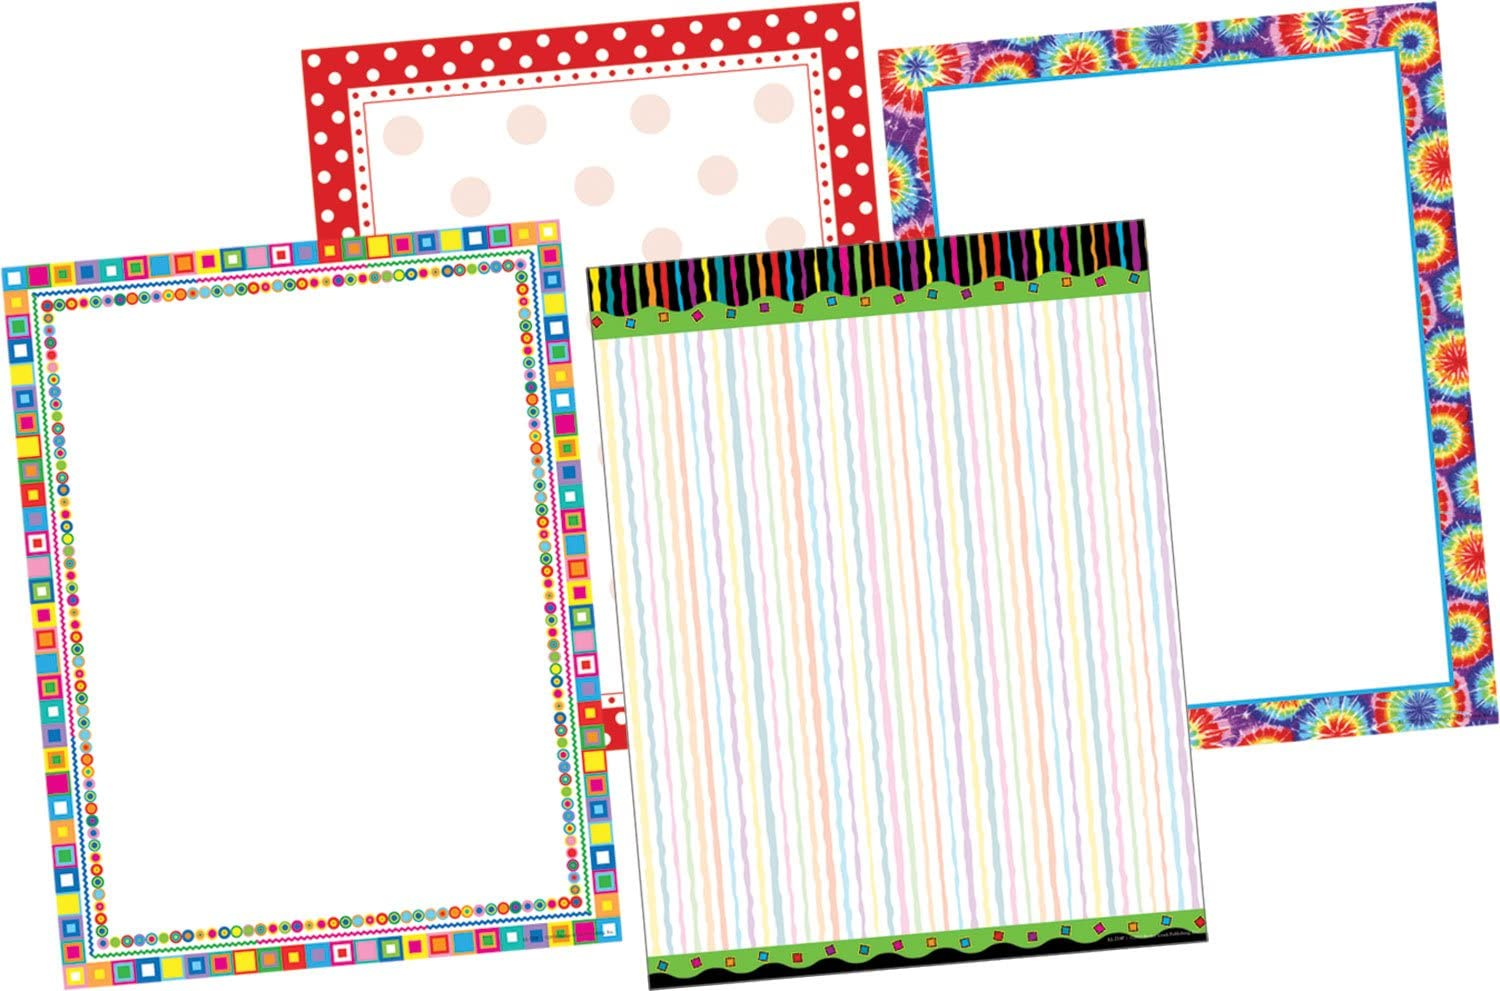 """Barker Creek Designer Computer Paper Set of 4, In the Groove, 200 Sheets (50 Each of 4 Designs) of Decorative Printer Paper, Stationery in Set, 8.5"""" by 11"""", Home, School and Office Supplies (751)"""